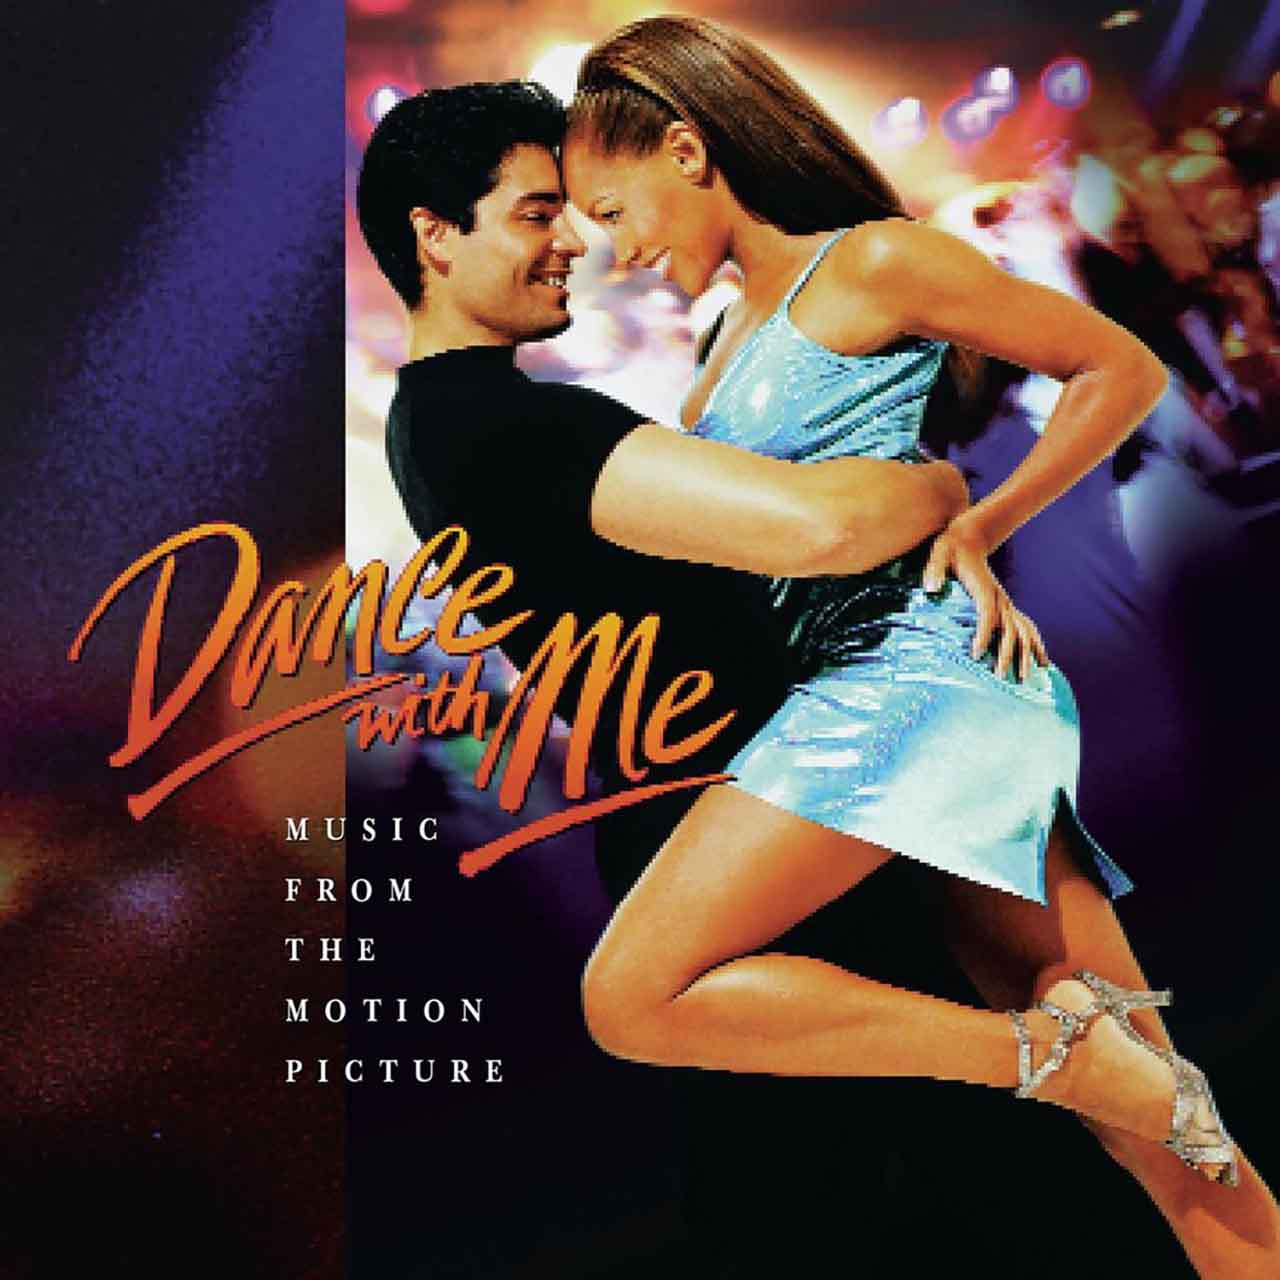 My Top 4 Soundtracks And How They Influence My Mood - When I Want To Shake It On The Dance Floor: While the movie that spawned this soundtrack is about a budding romance between a competitive Latin dancer and a Cuban immigrant who is also a naturally gifted dancer, it is filled with some seriously hot Latin dance music. One thing that anyone close to me knows it that I LOVE to dance! Dance, like music, is another magnificent way to boost your mood. It allows you to forget about your troubles and let off some steam. You don't have to be a great dancer either, just feel the music and do what you want! My all-time favorite songs on the Dance With Me soundtrack are Magalenha, Fiesta, Pa'Los Rumberos, and Echa Pa'Lante. When I hear any of these songs, it is mandatory that I get up and shake it like there is no tomorrow!